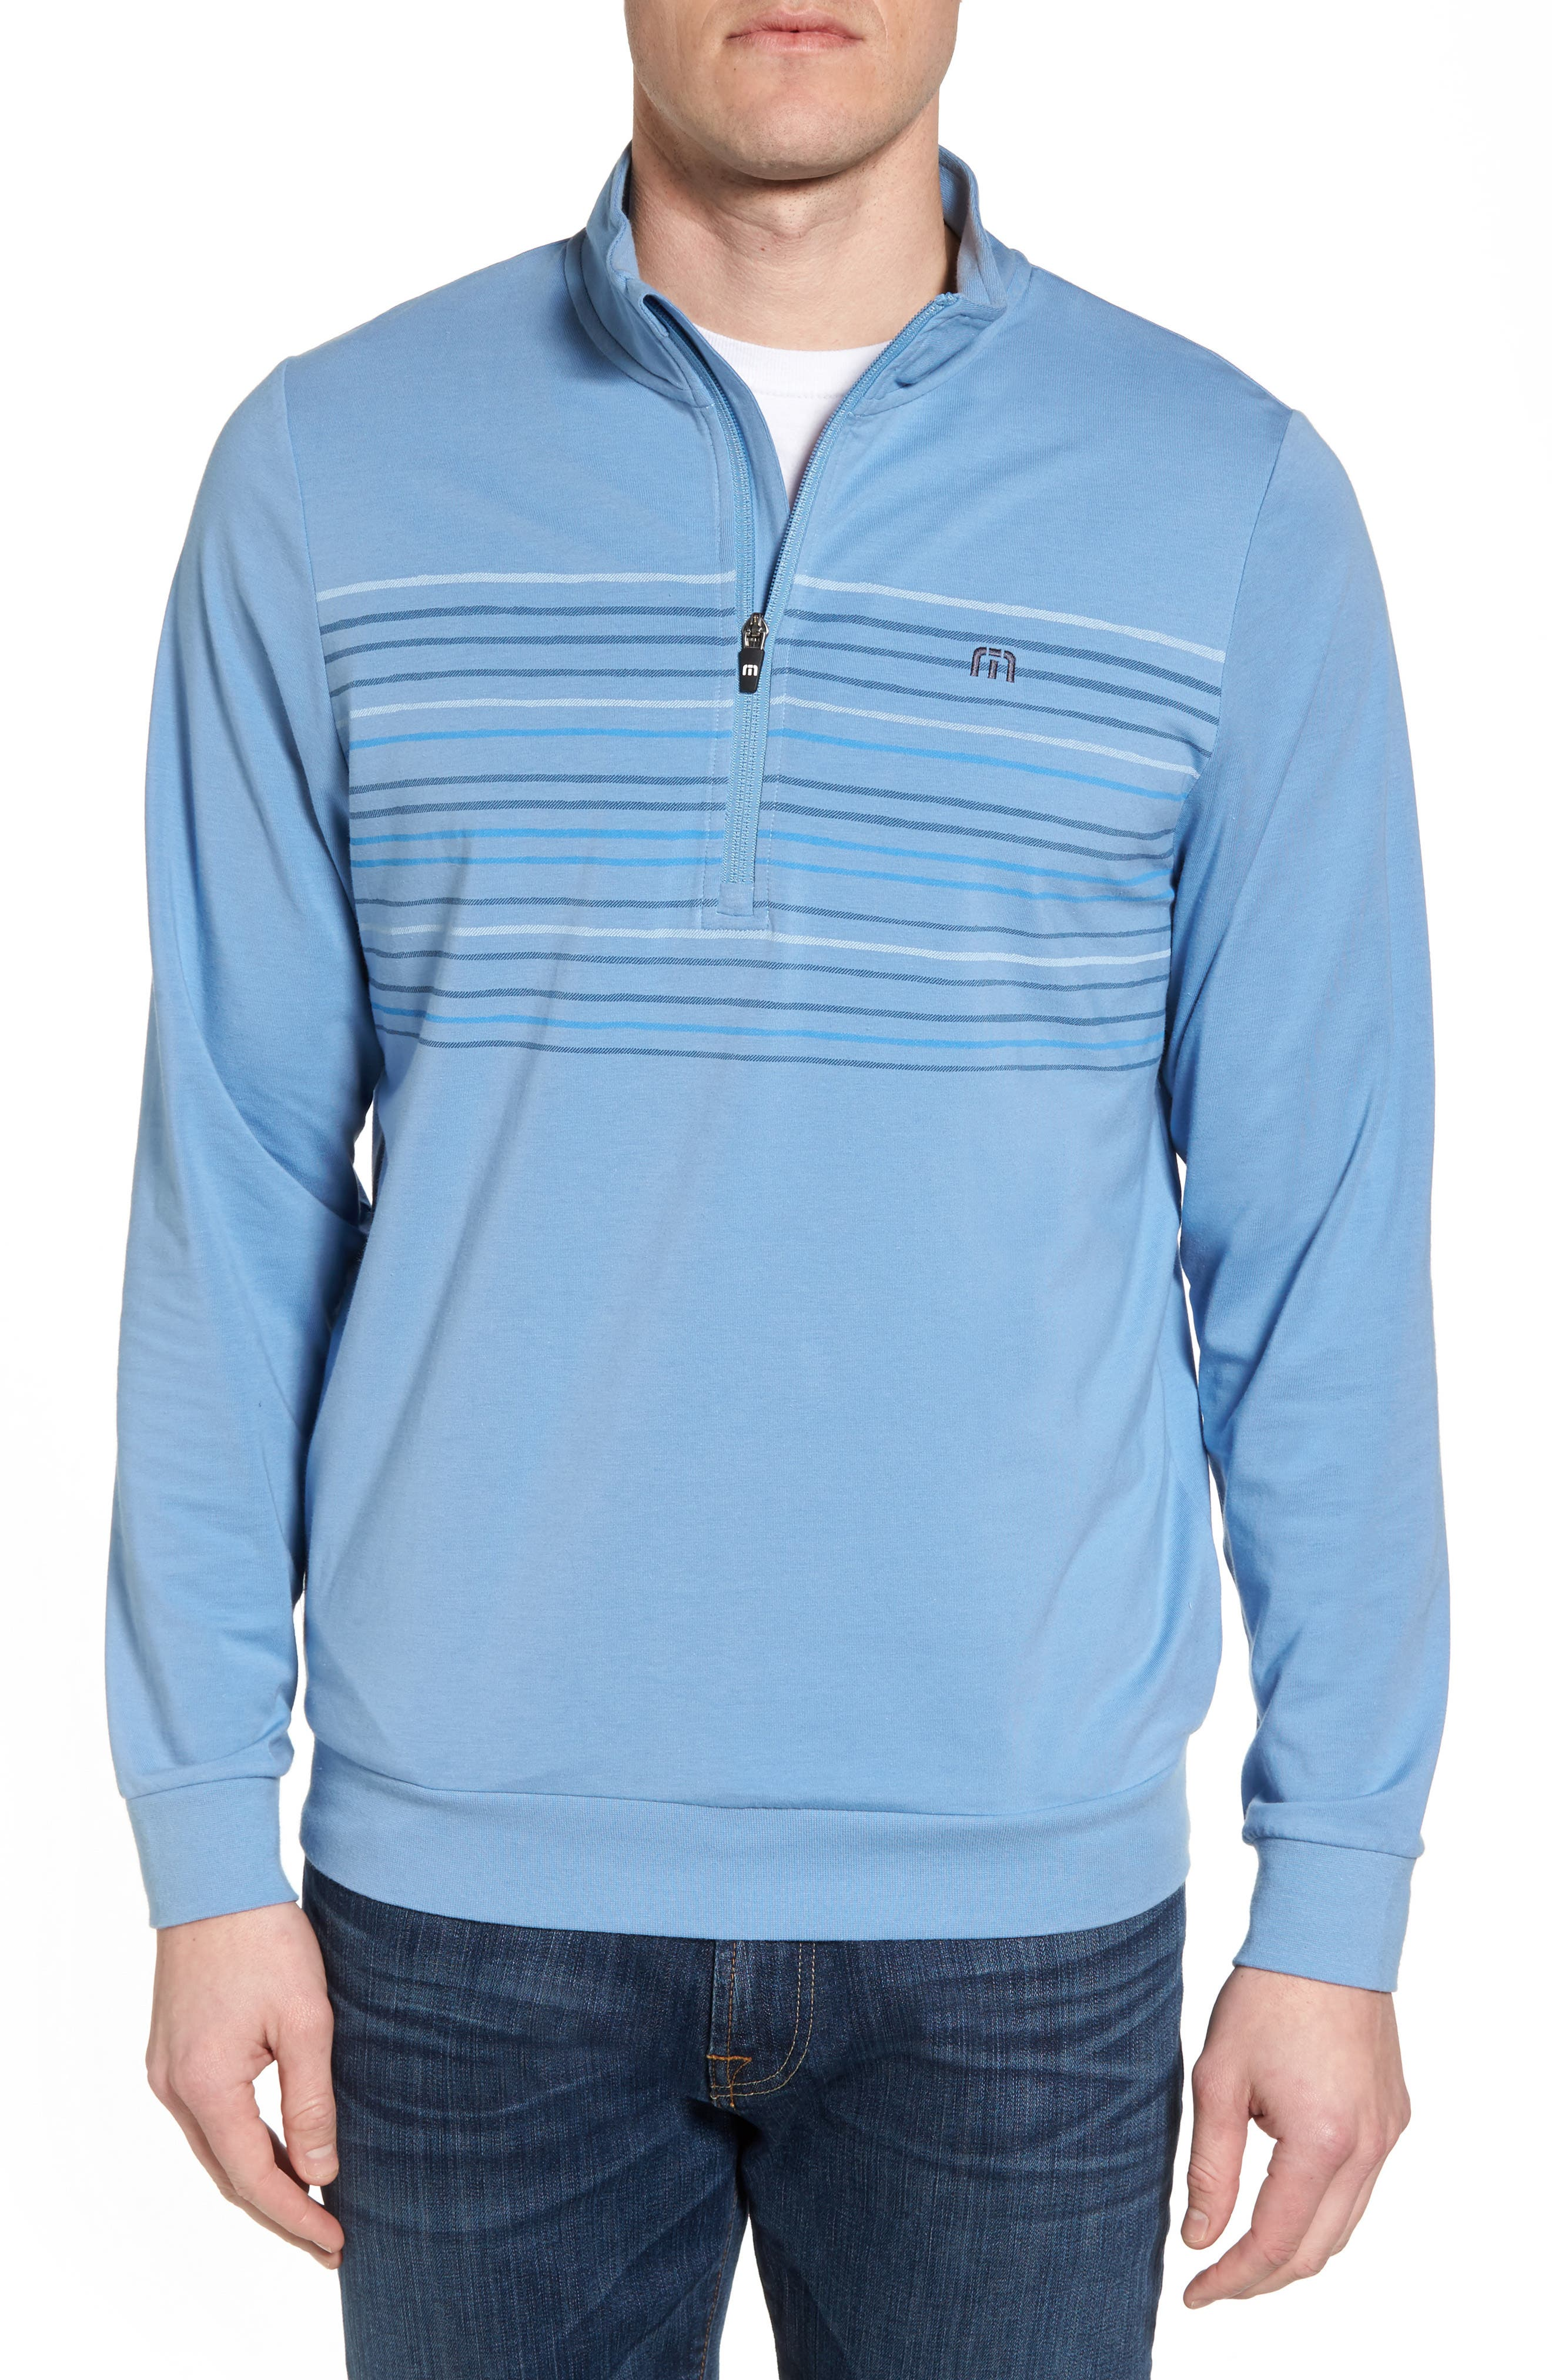 Vesa Quarter Zip Pullover,                             Main thumbnail 1, color,                             Allure